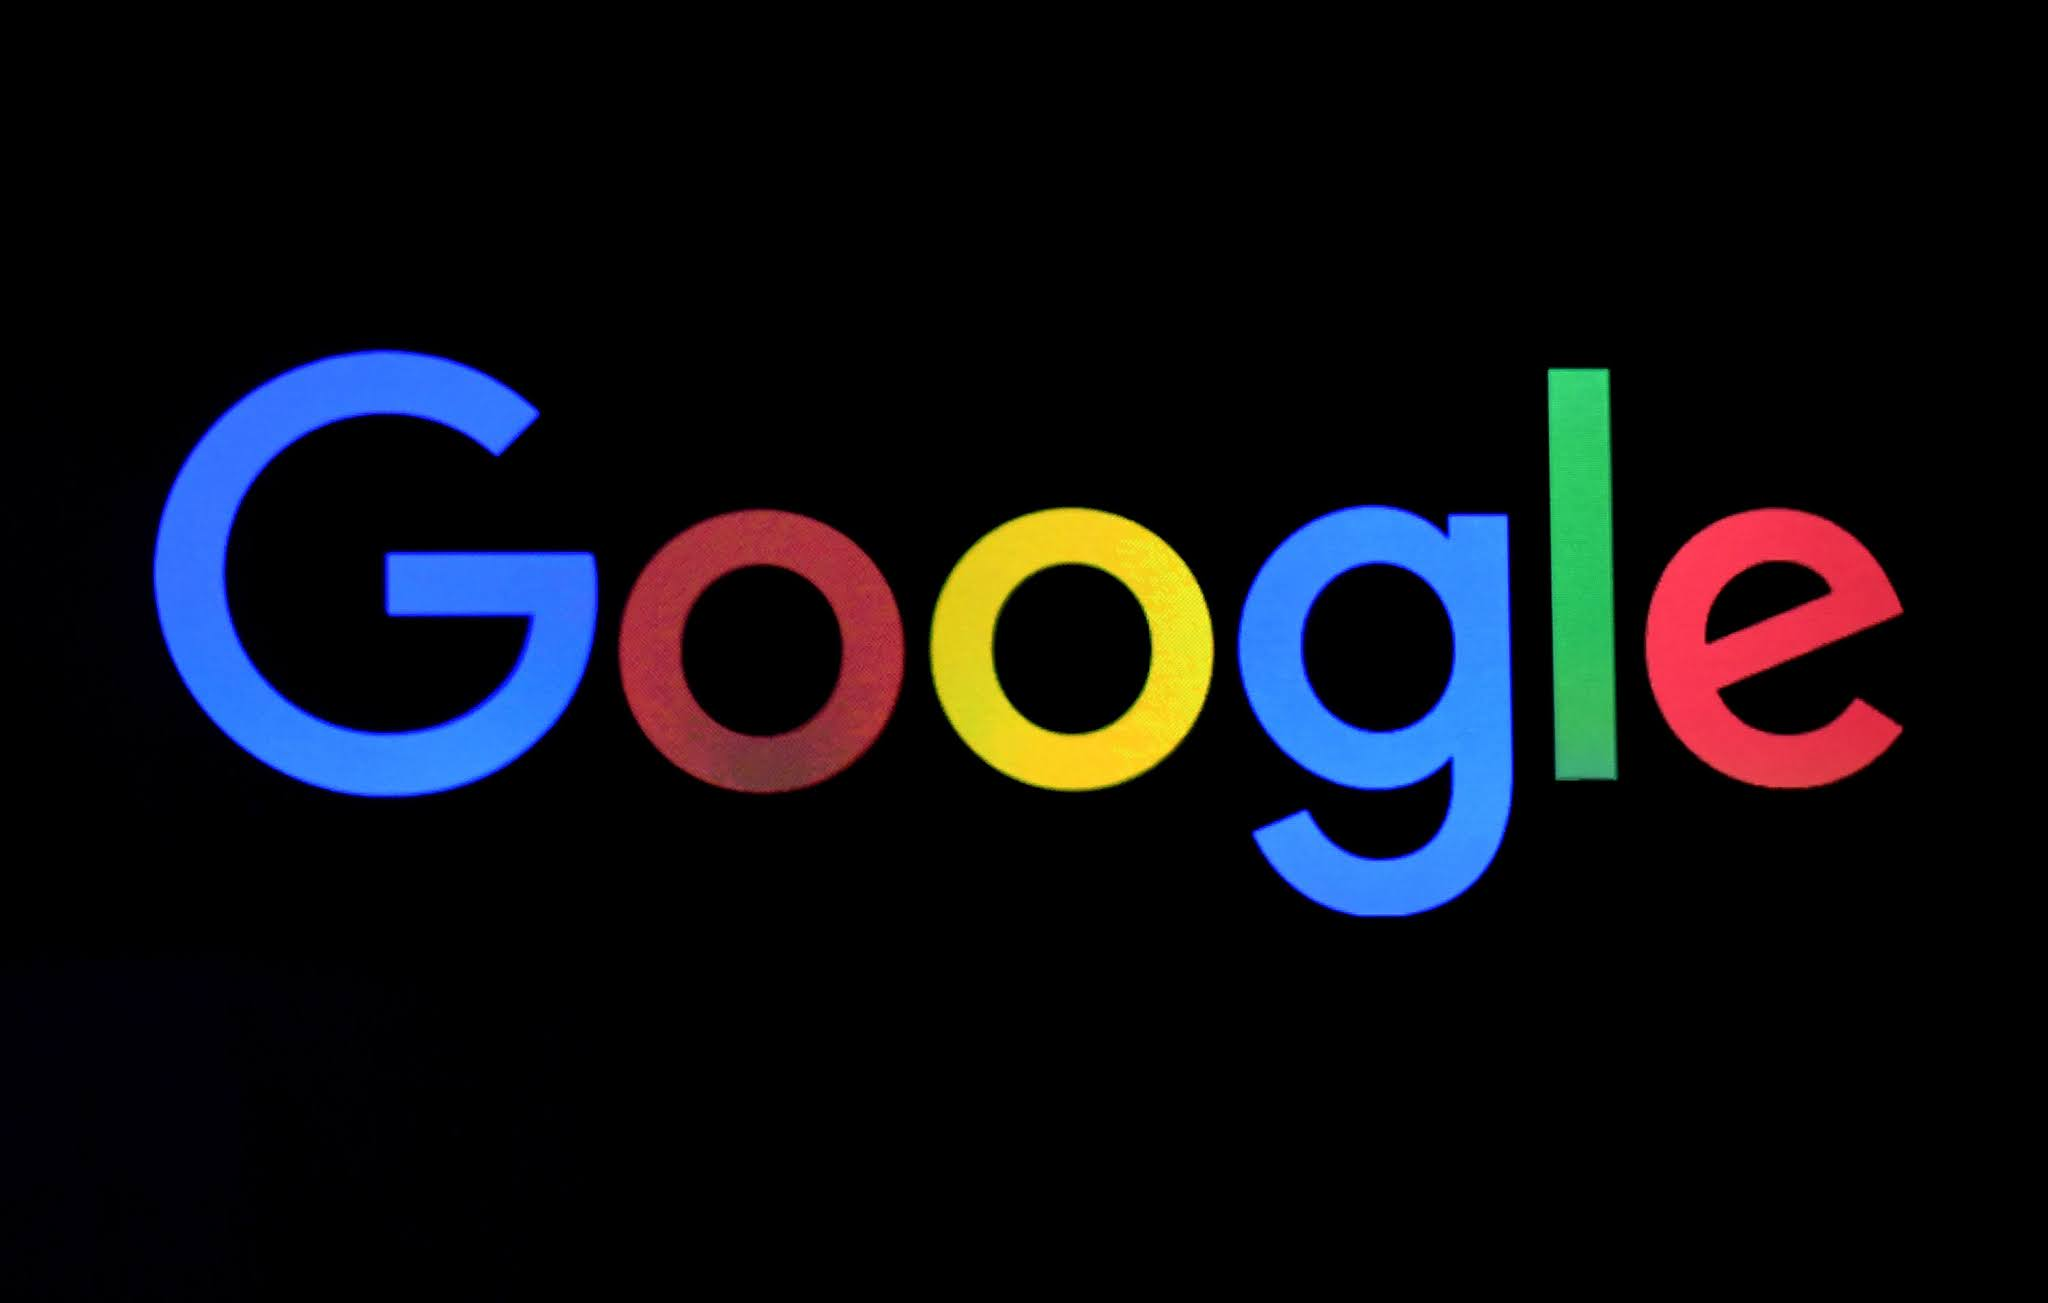 How to delete the data that Google has about our activity